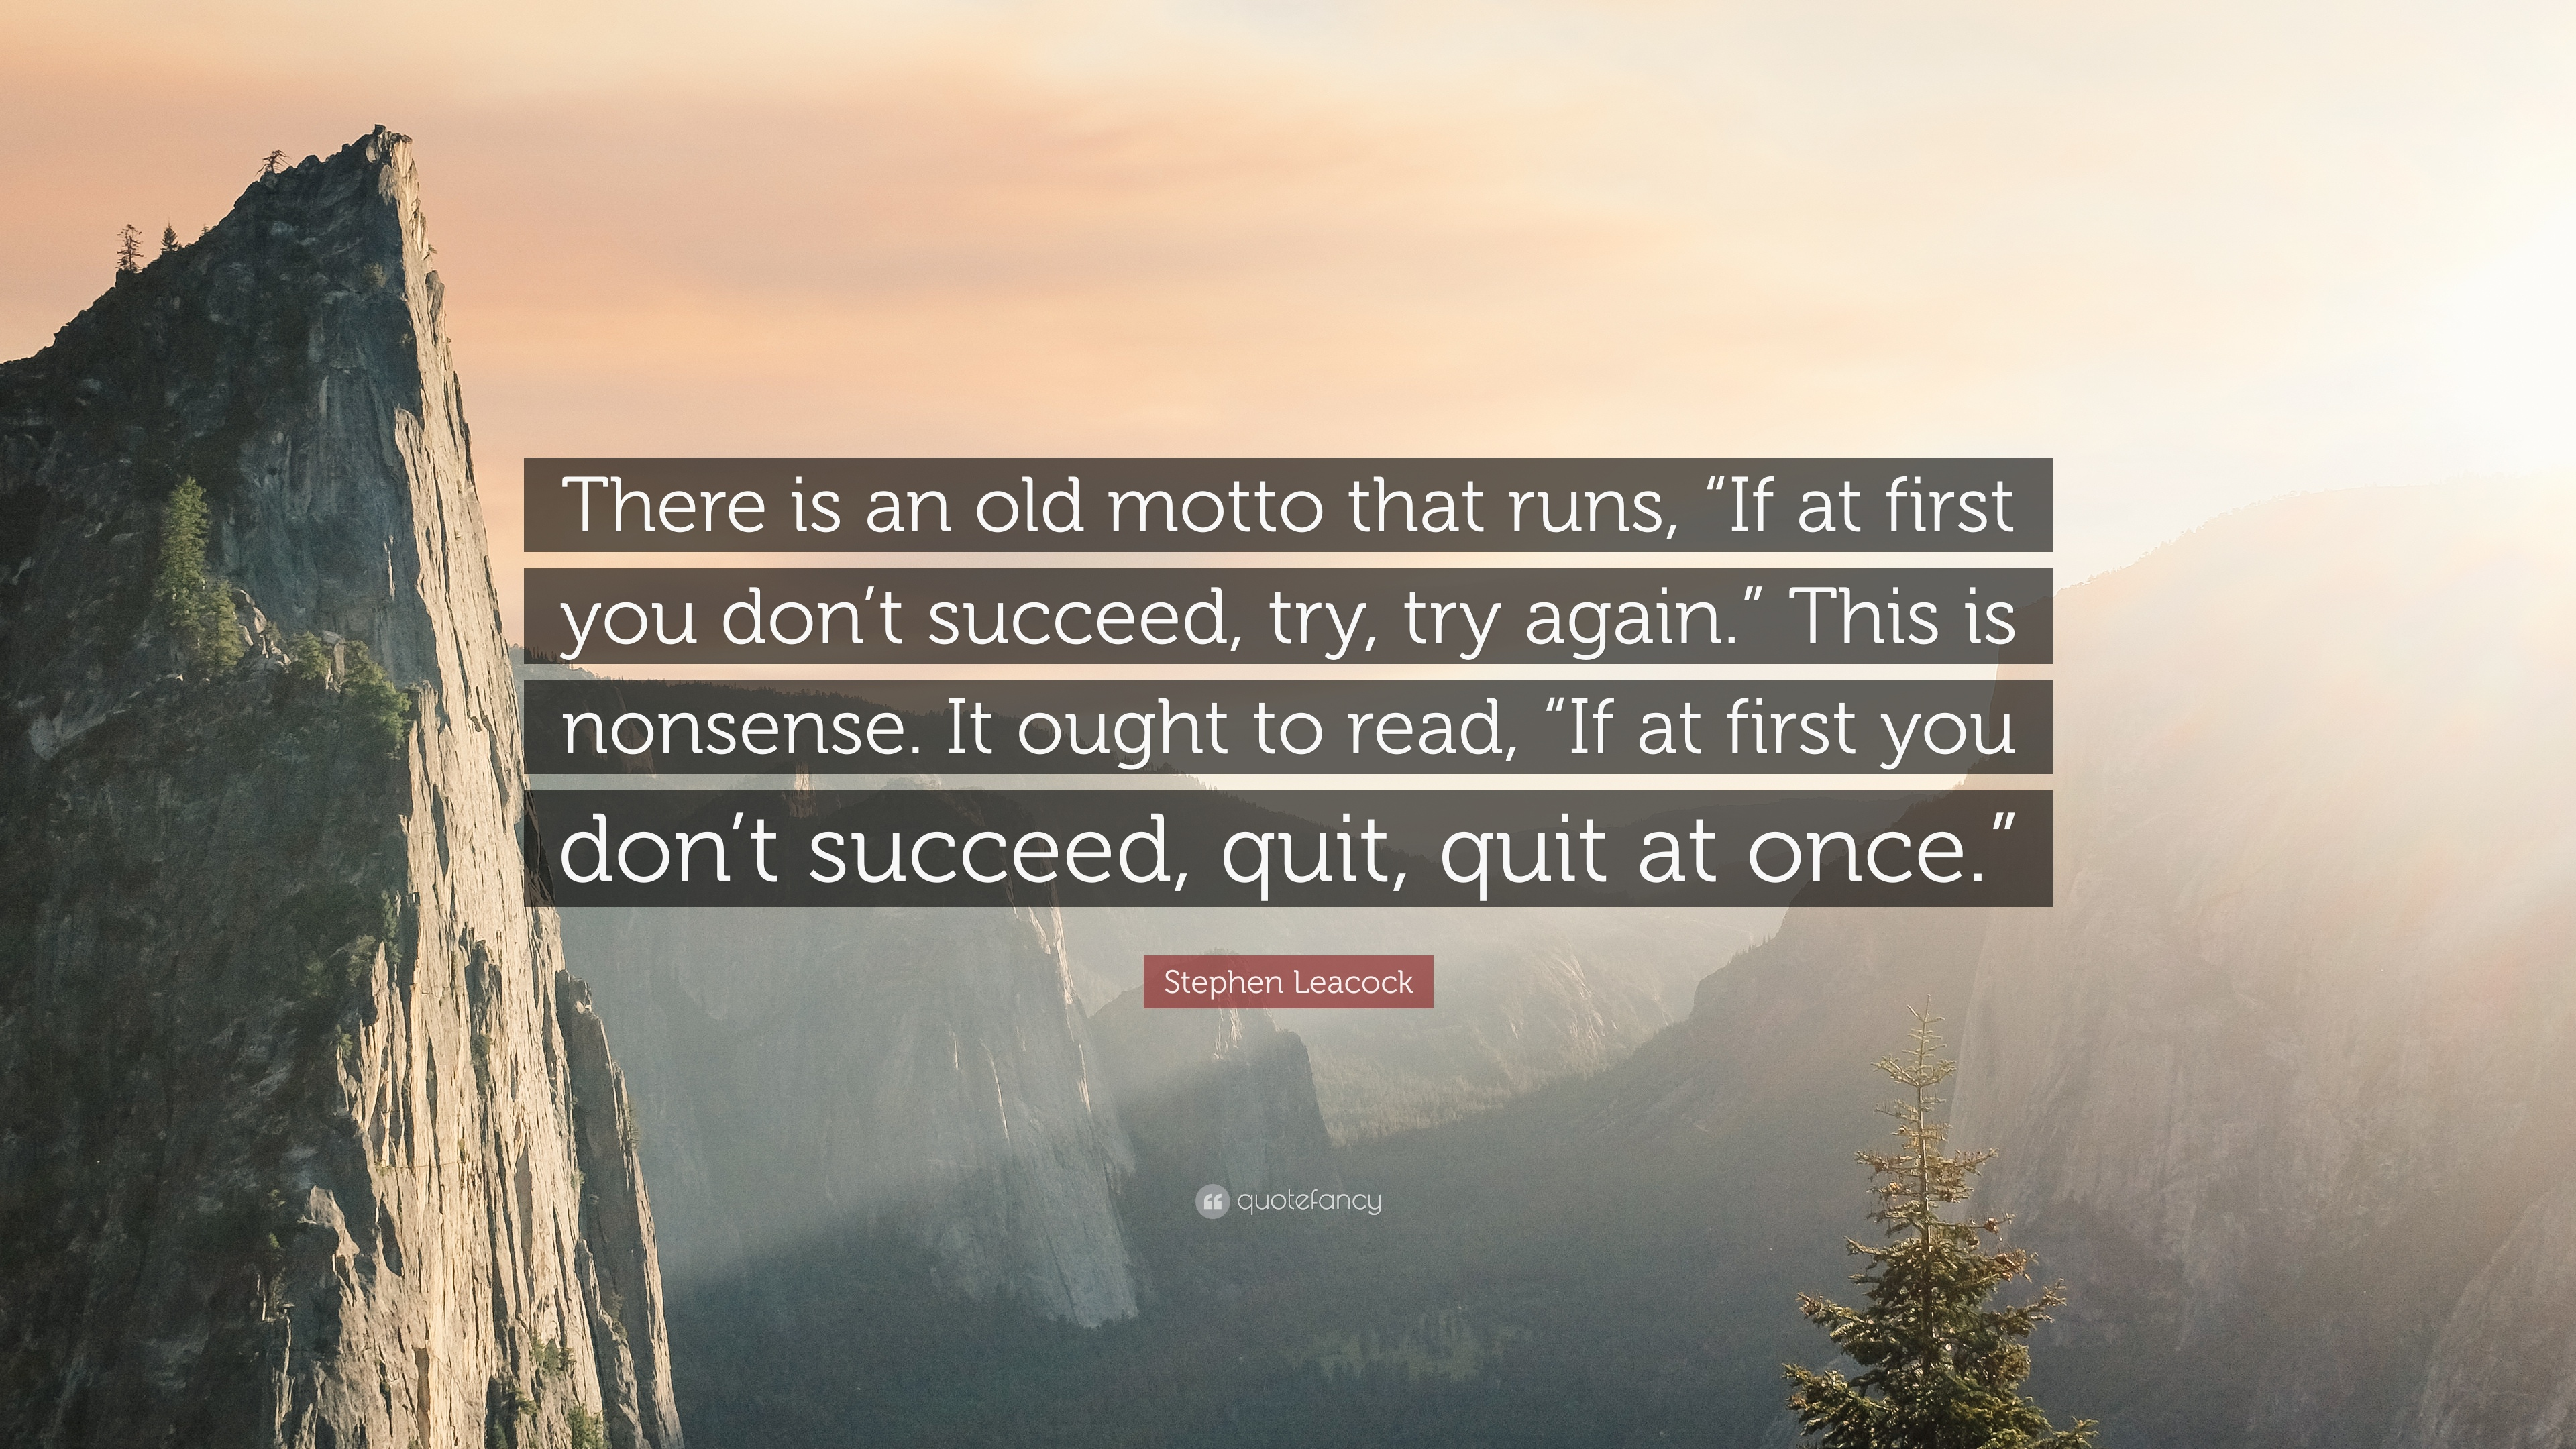 If at first you don t succeed quit